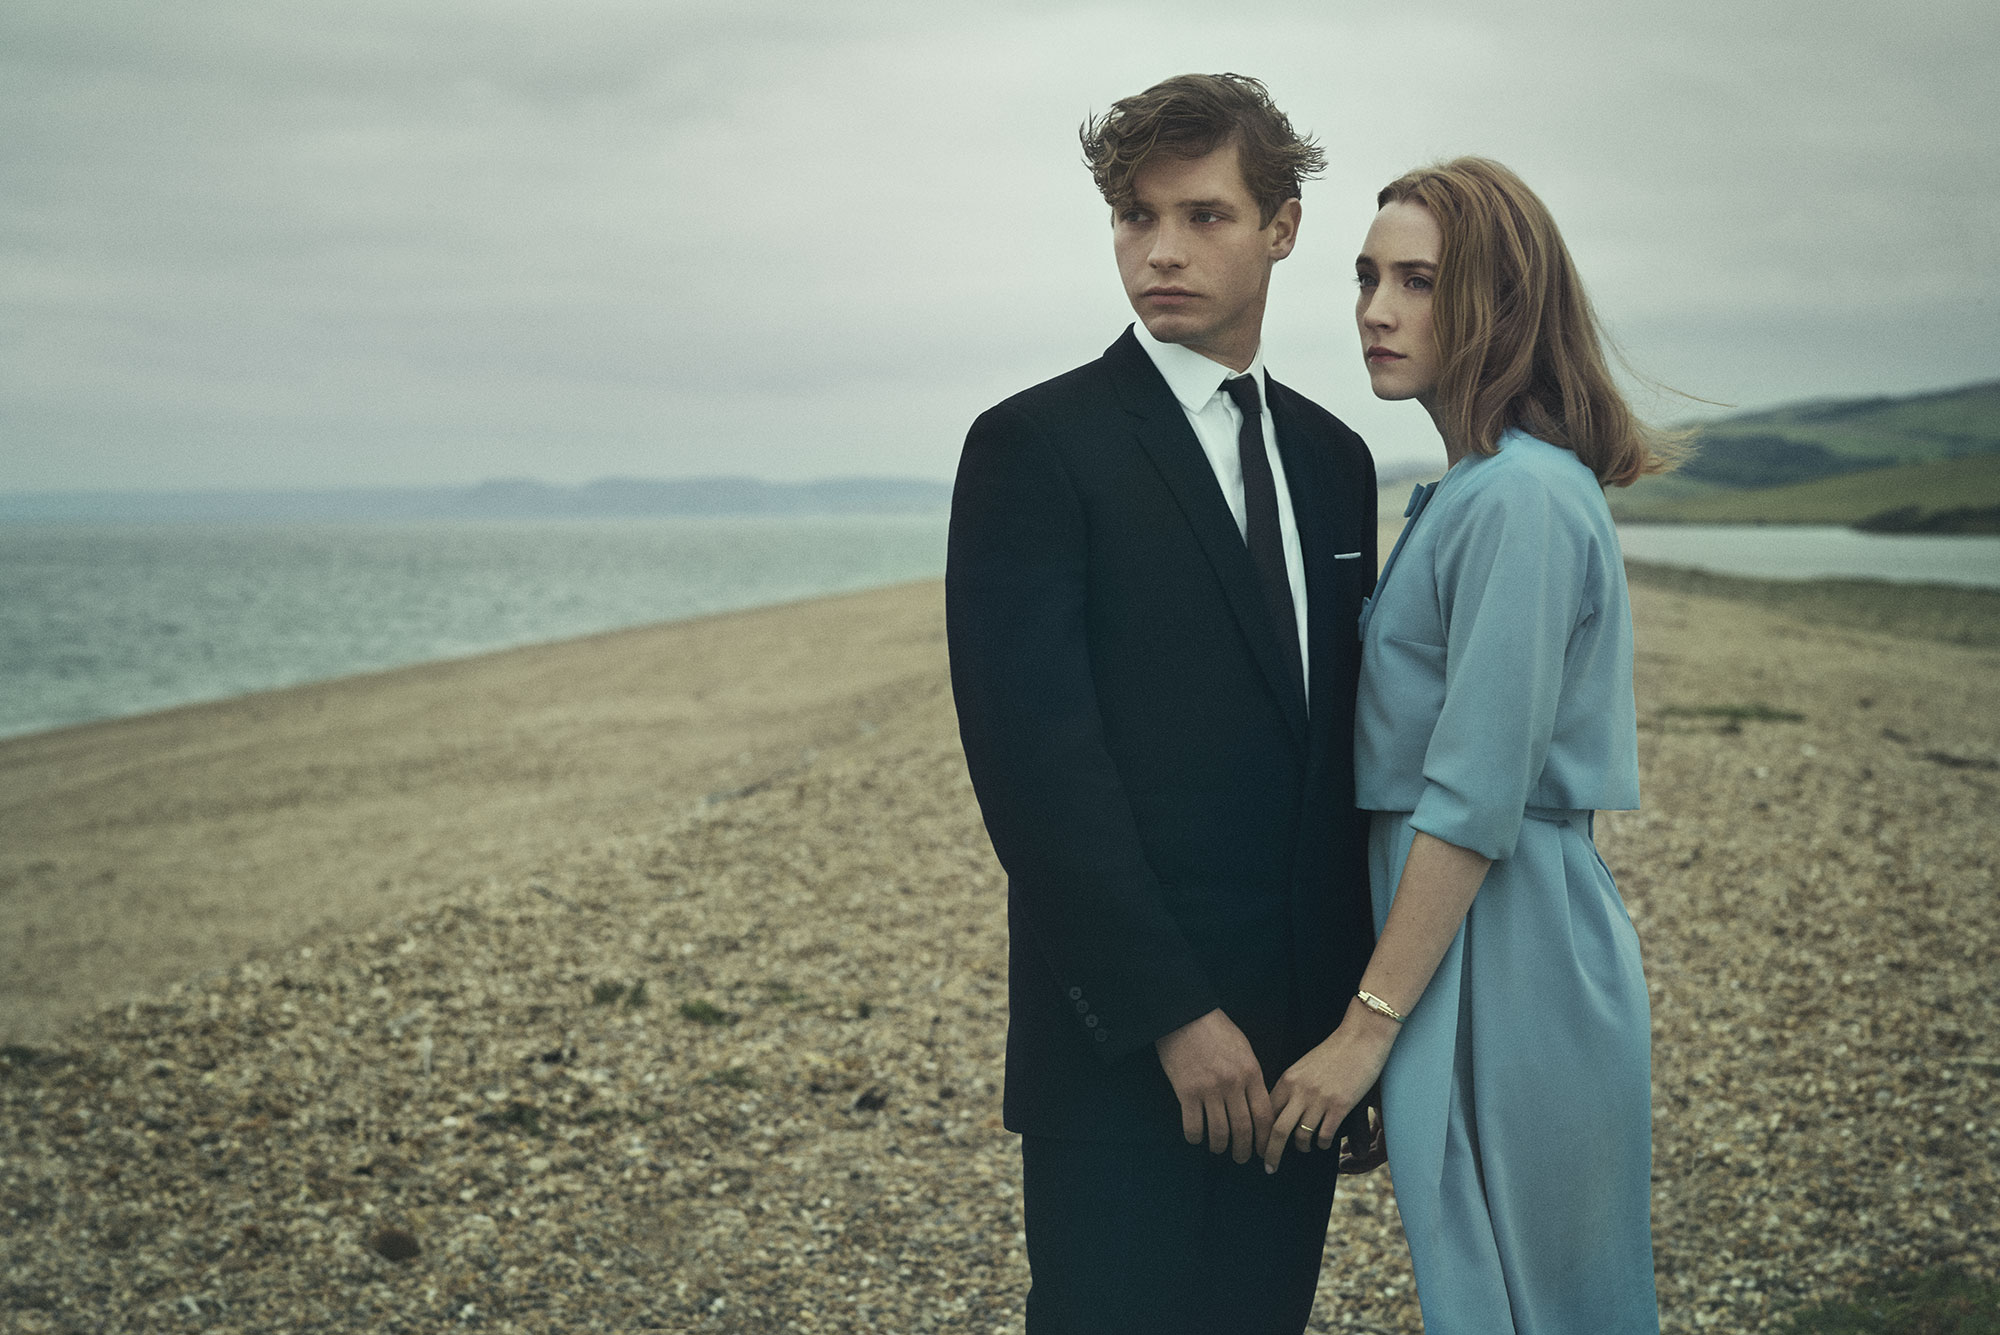 'On Chesil Beach' Saoirse Ronan & Billy Howle